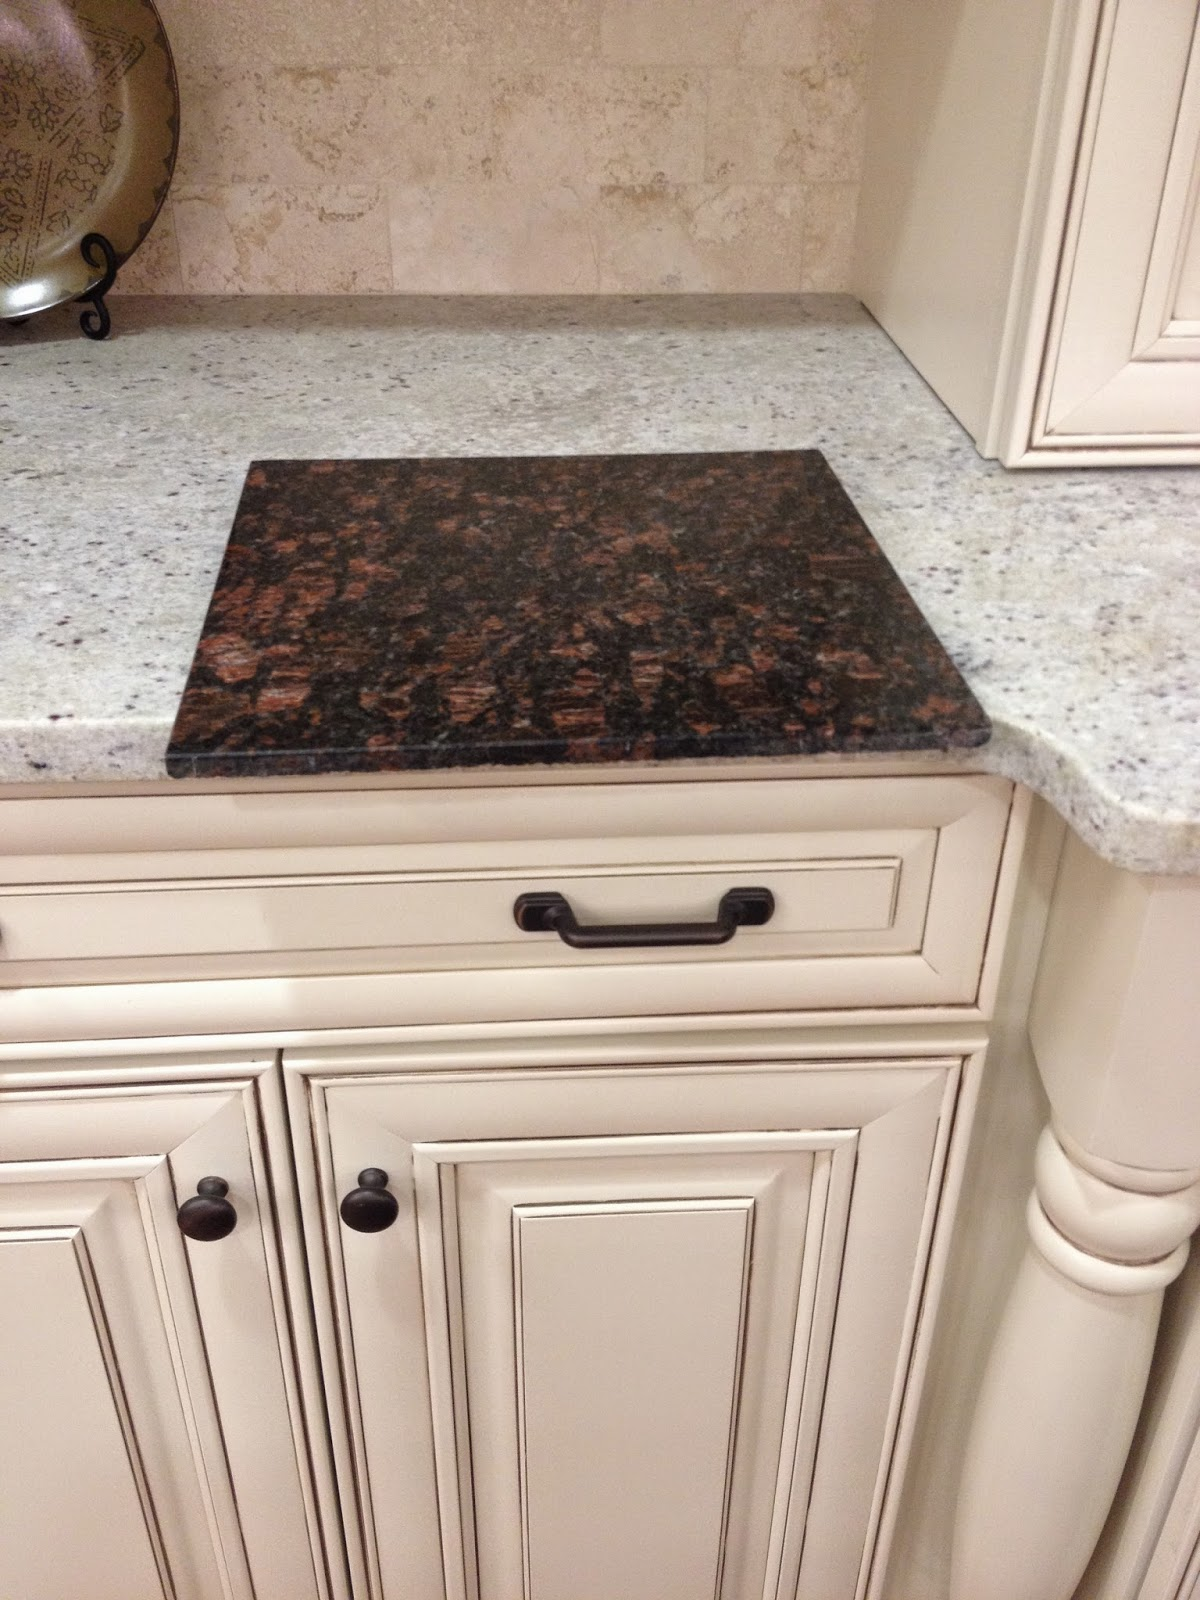 Found A Kitchen Setup With Cabinets Very Similar In Color So We Took A  Picture With Our Granite Choice On Top